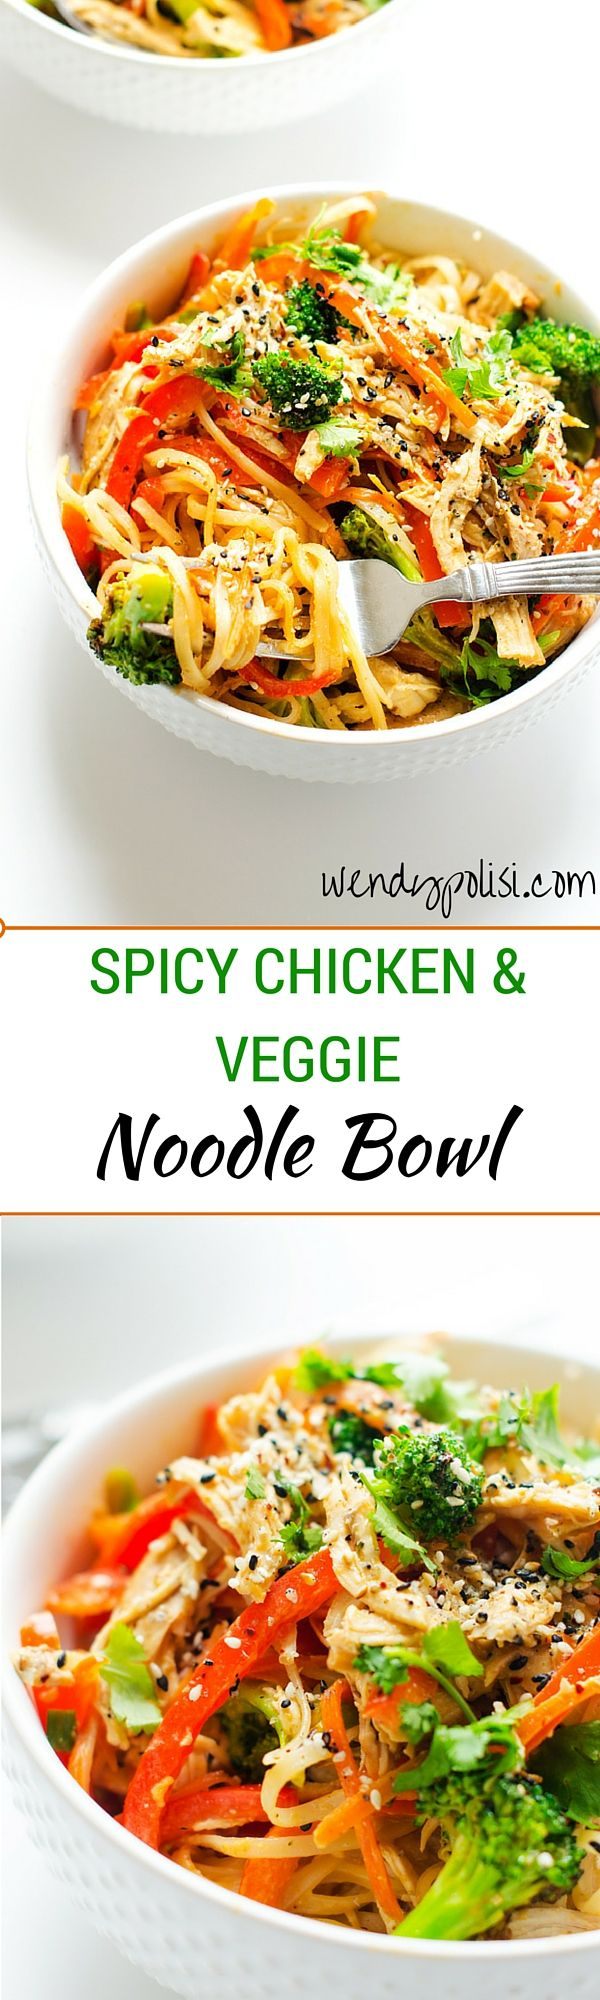 Spicy Chicken and Veggie Noodle Bowl: this gluten-free noodle bowl is packed with veggies and so delicious | WendyPolisi.com